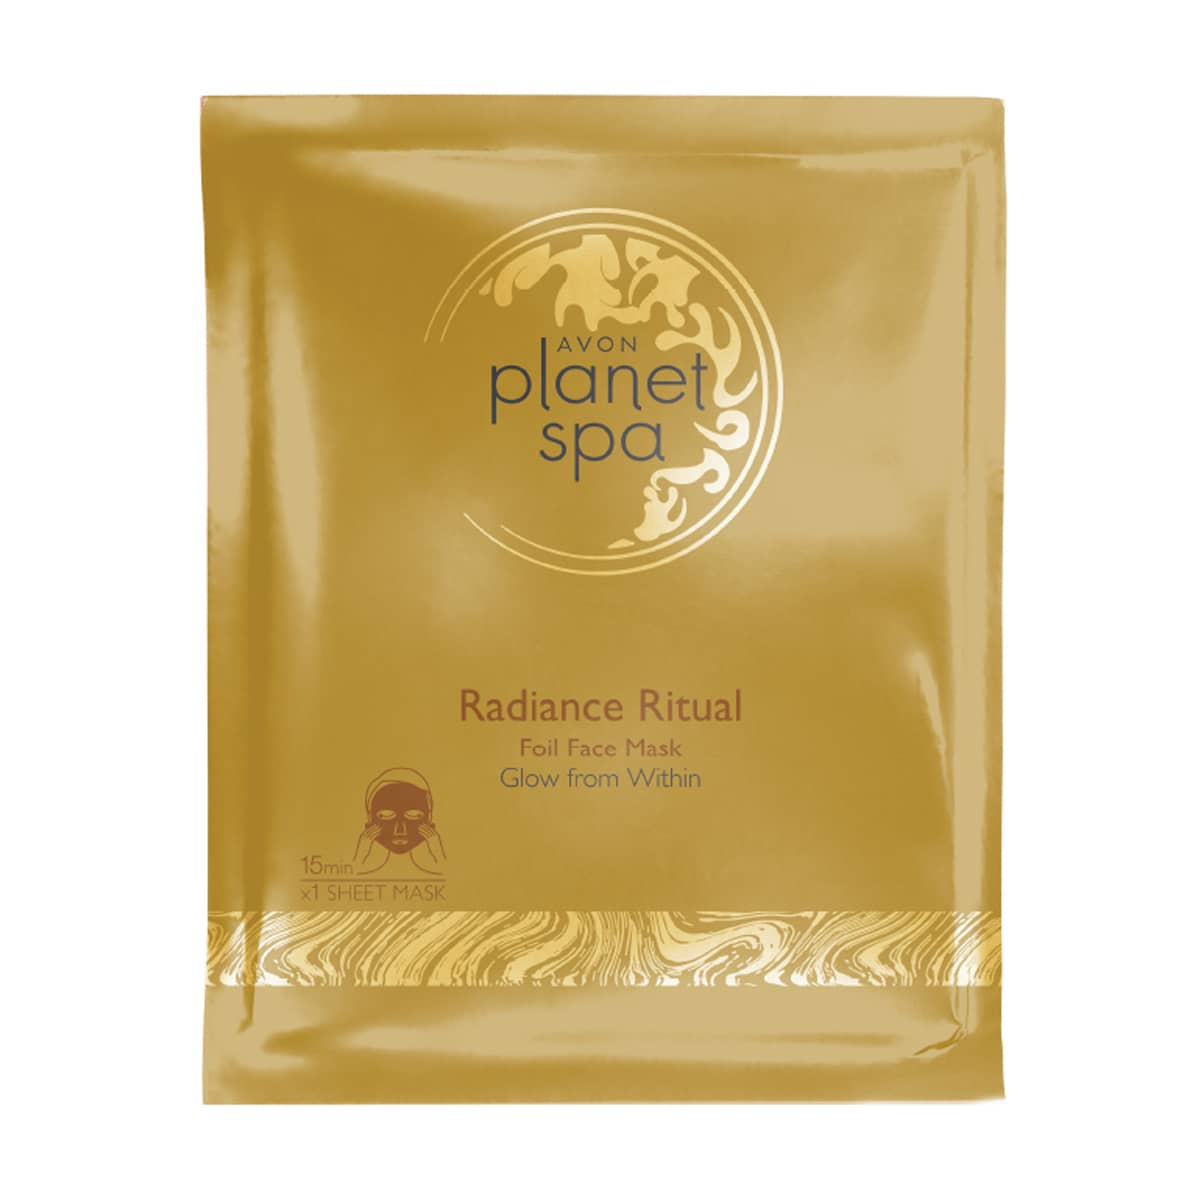 Planet Spa Altın Folyo Maske 1382034 1 piece